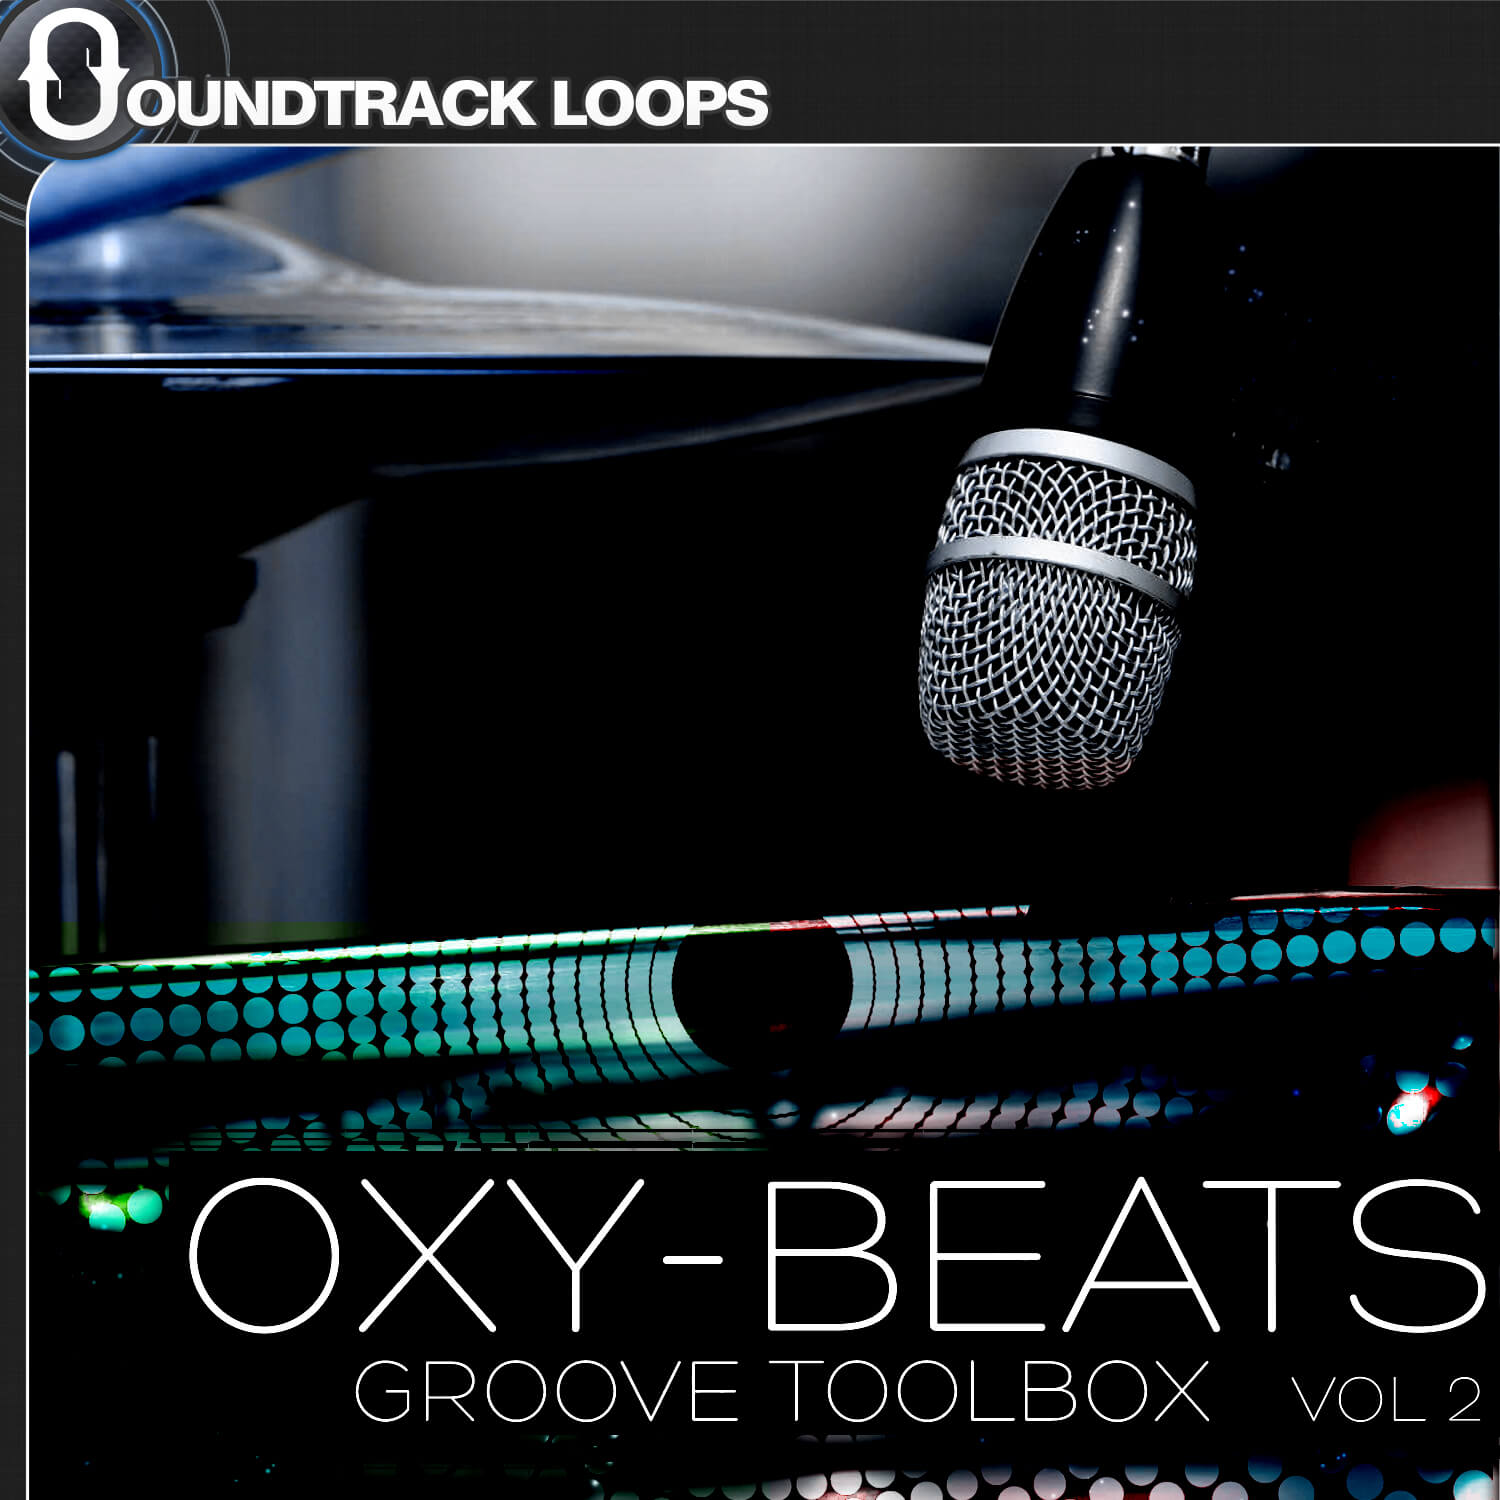 Oxy-Beats - Mic'd Drums - Groove Toolbox Vol 2